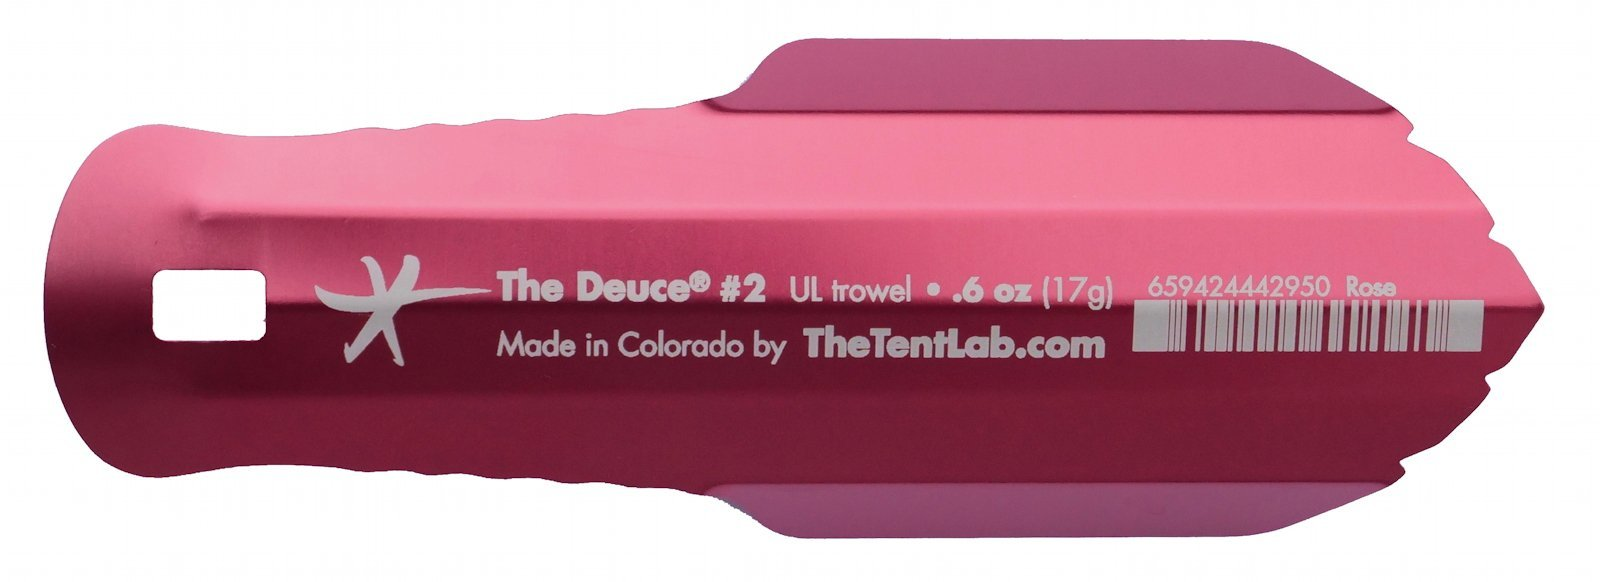 TheTentLab New Improved Deuce(R) Ultralight Backpacking Potty Trowel - Now in 3 Sizes